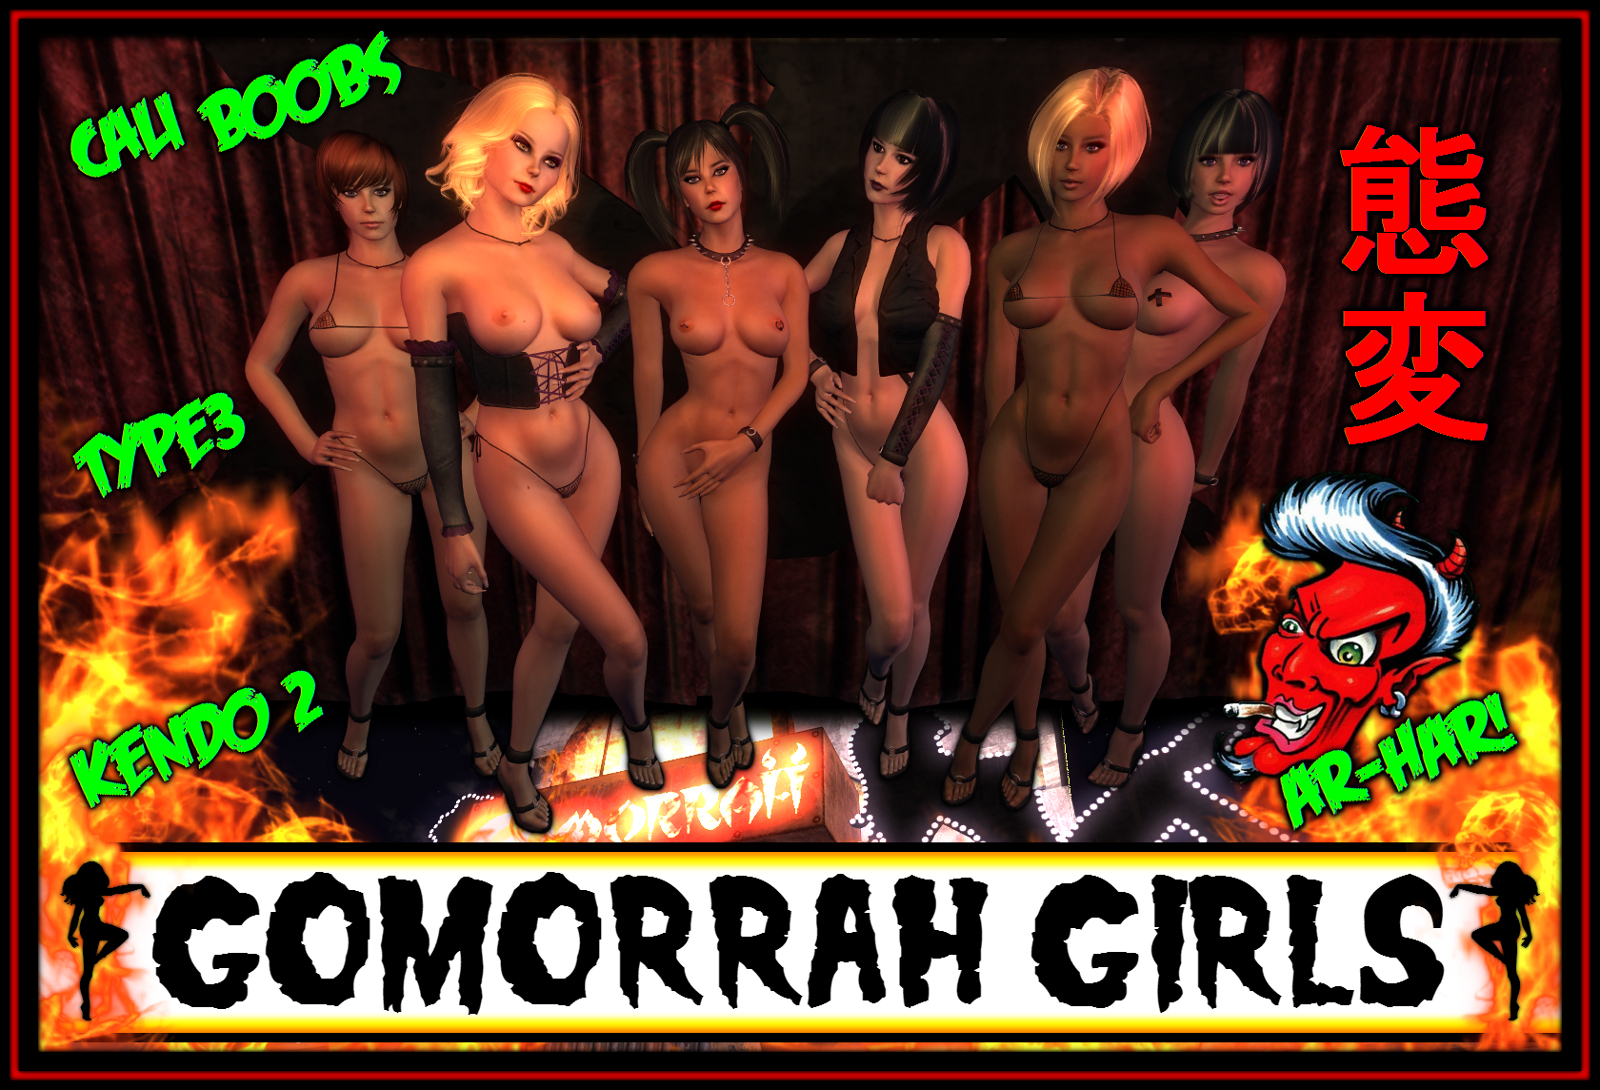 Kendo 2's Gomorrah Girls for Cali Boobs Type3